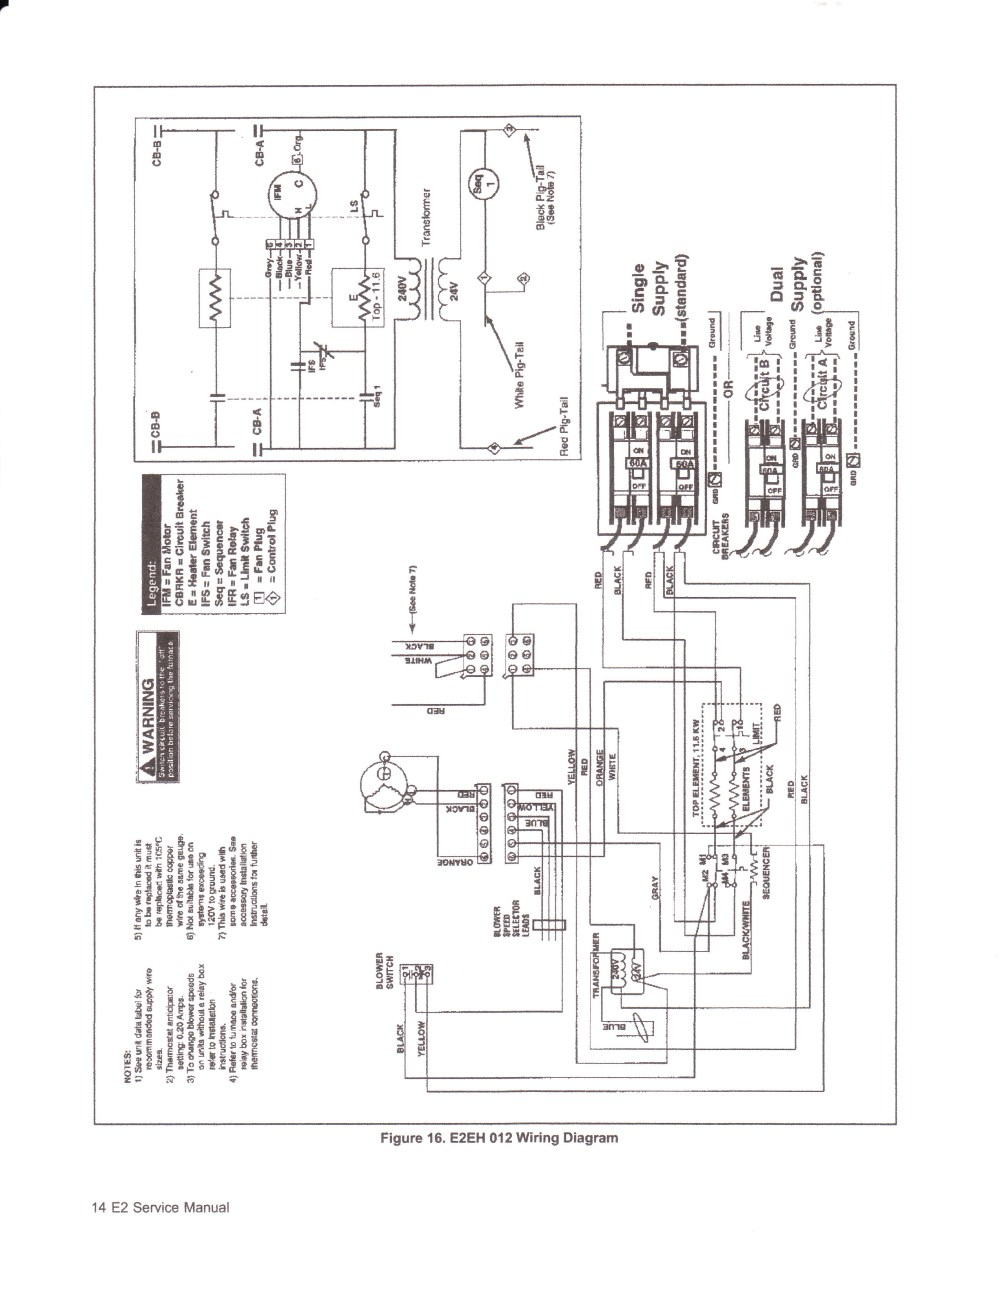 medium resolution of lennox electric furnace wiring diagram wiring diagram paper well pump wire diagram miller